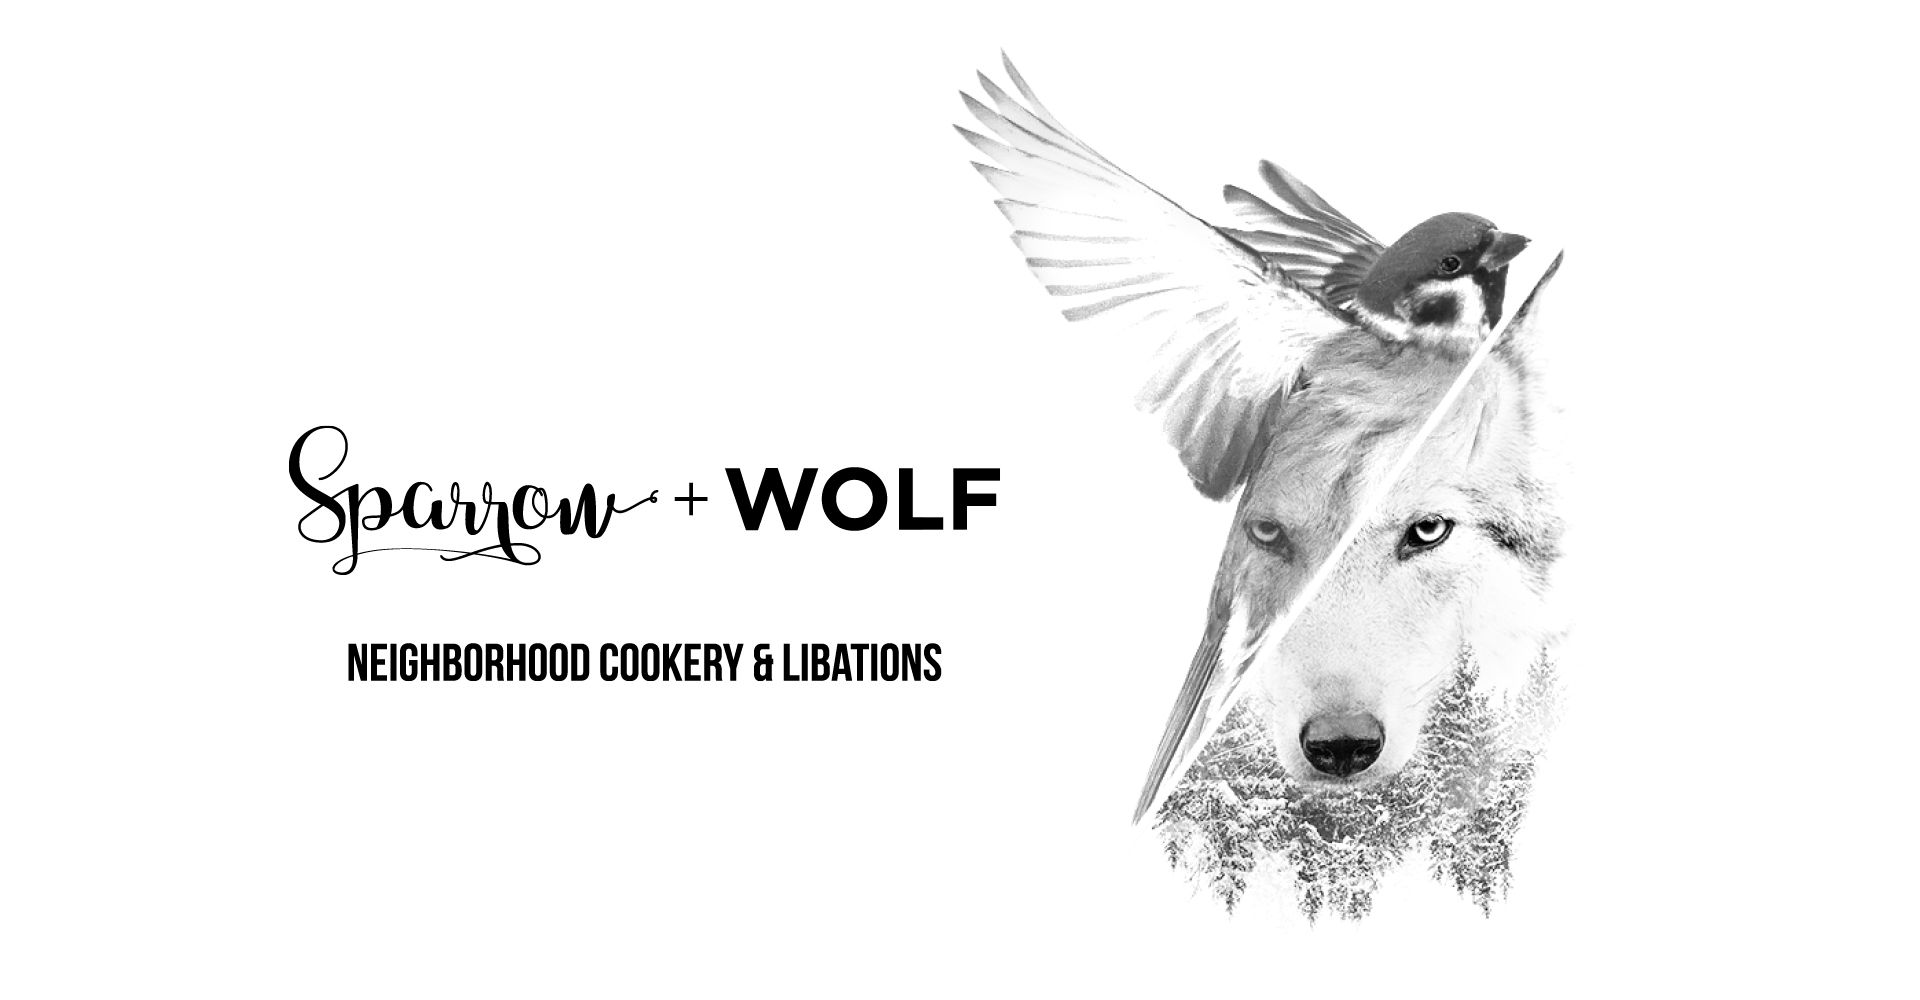 Sparrow + Wolf | Neighborhood Cookery & Libations